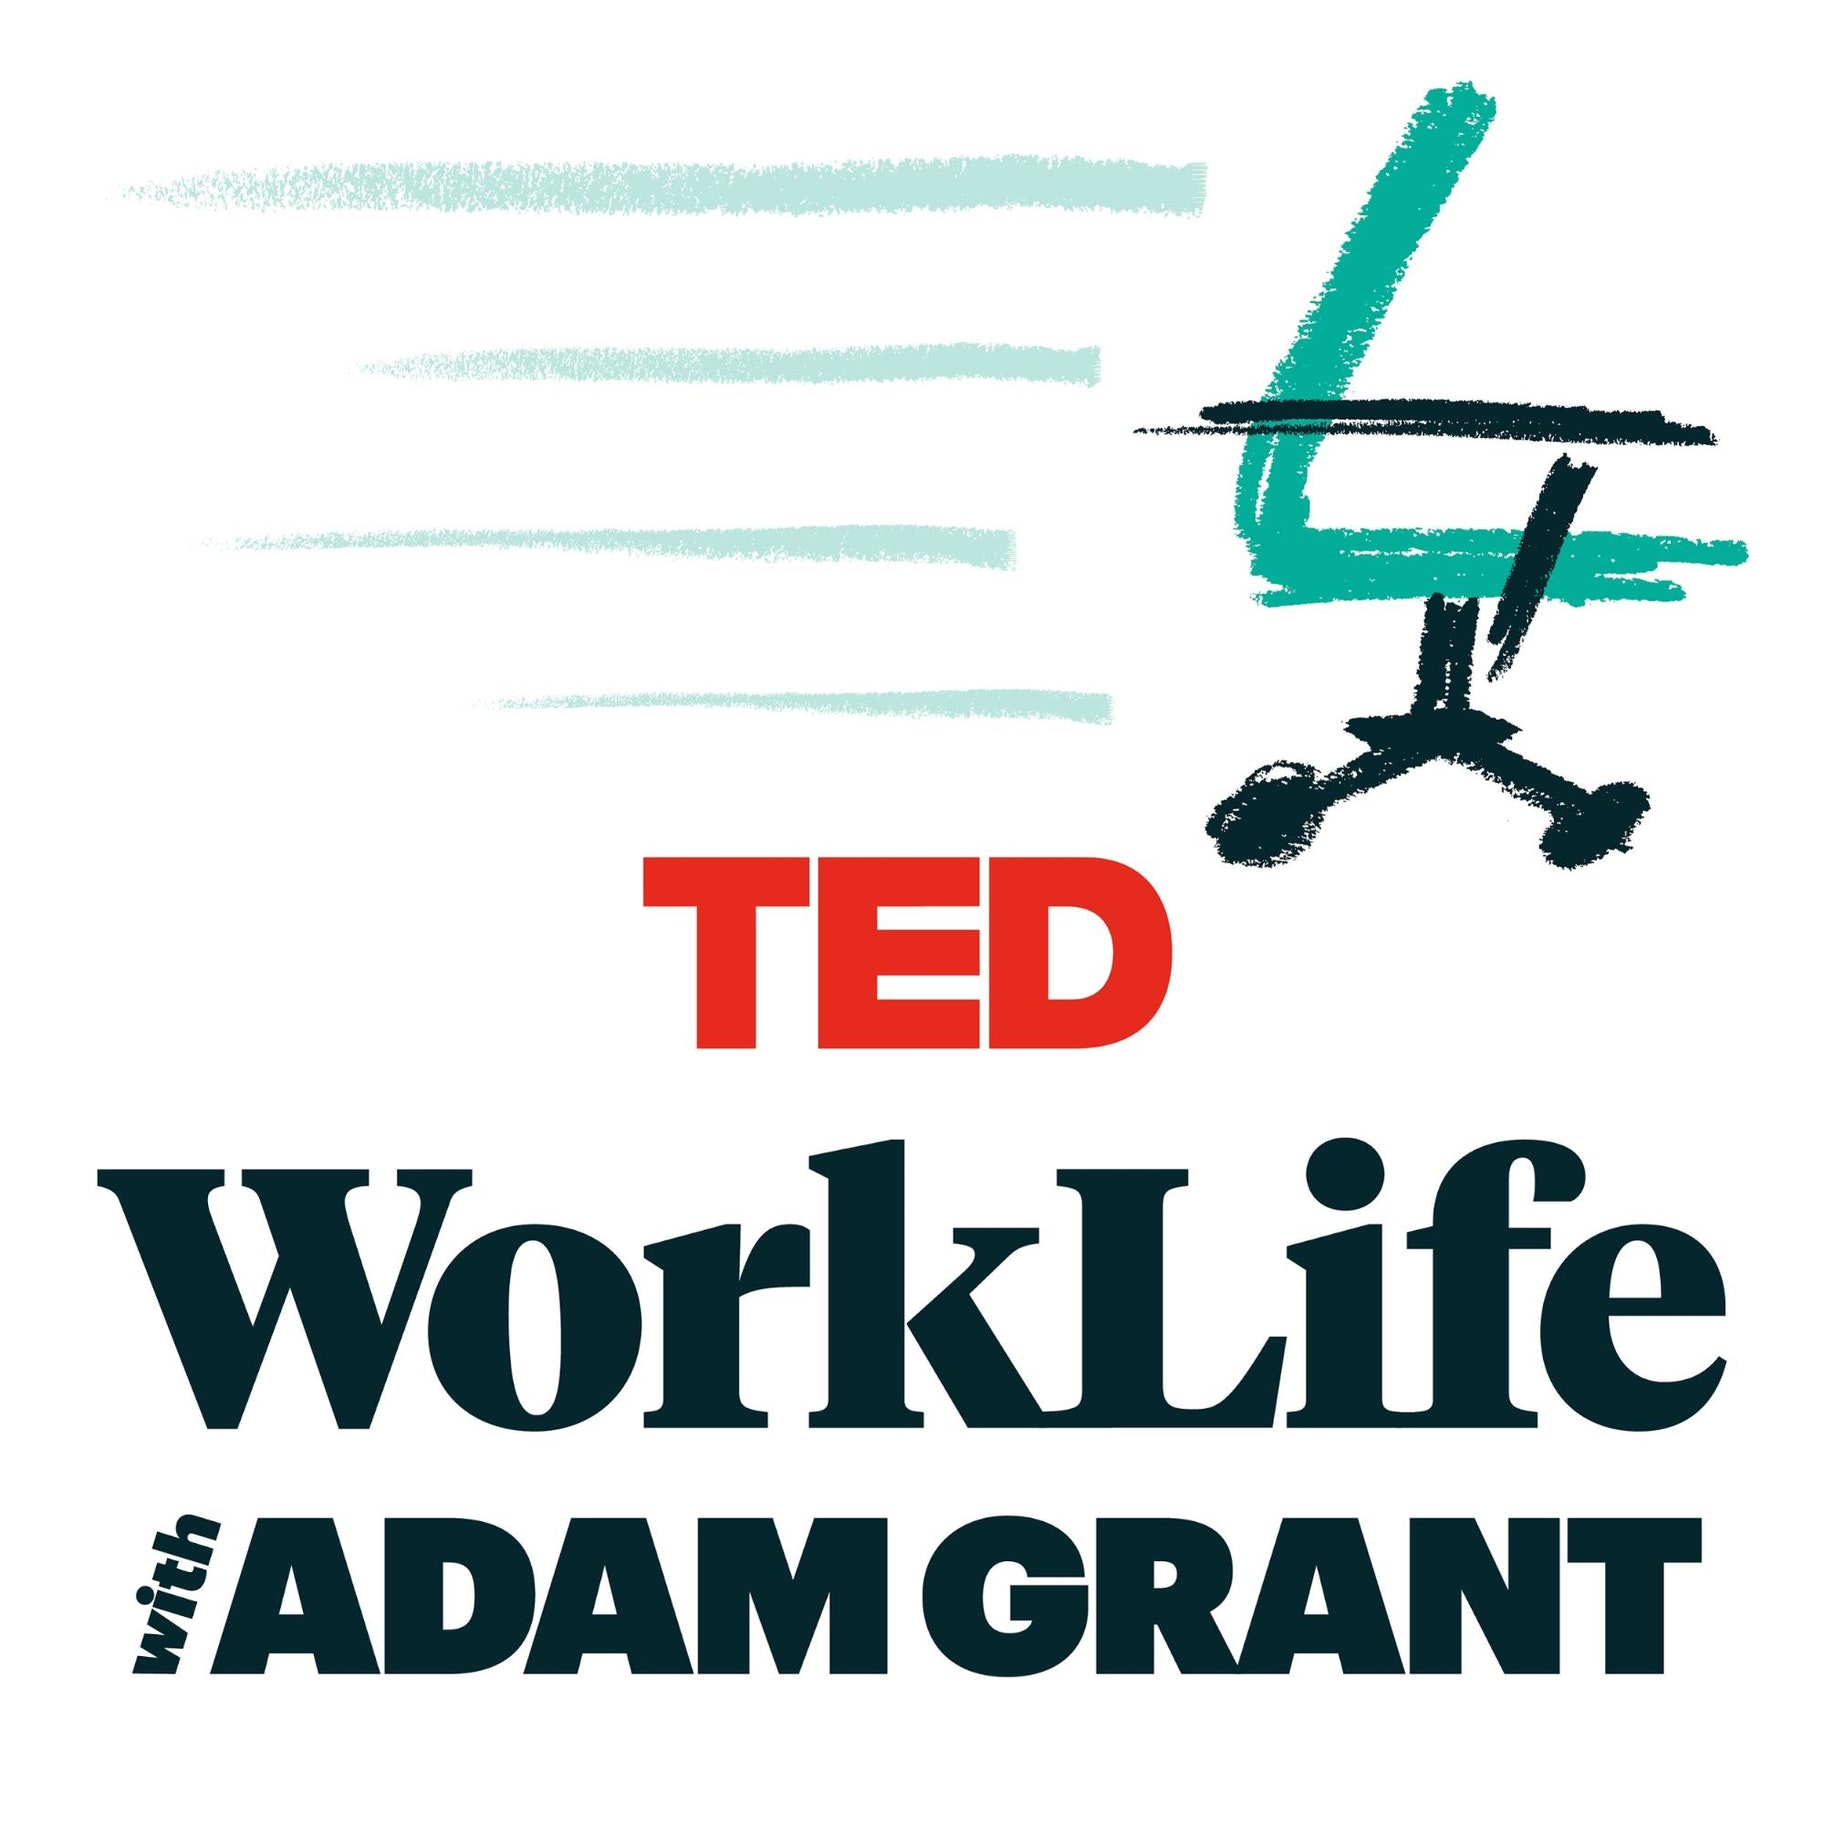 Ted WorkLife